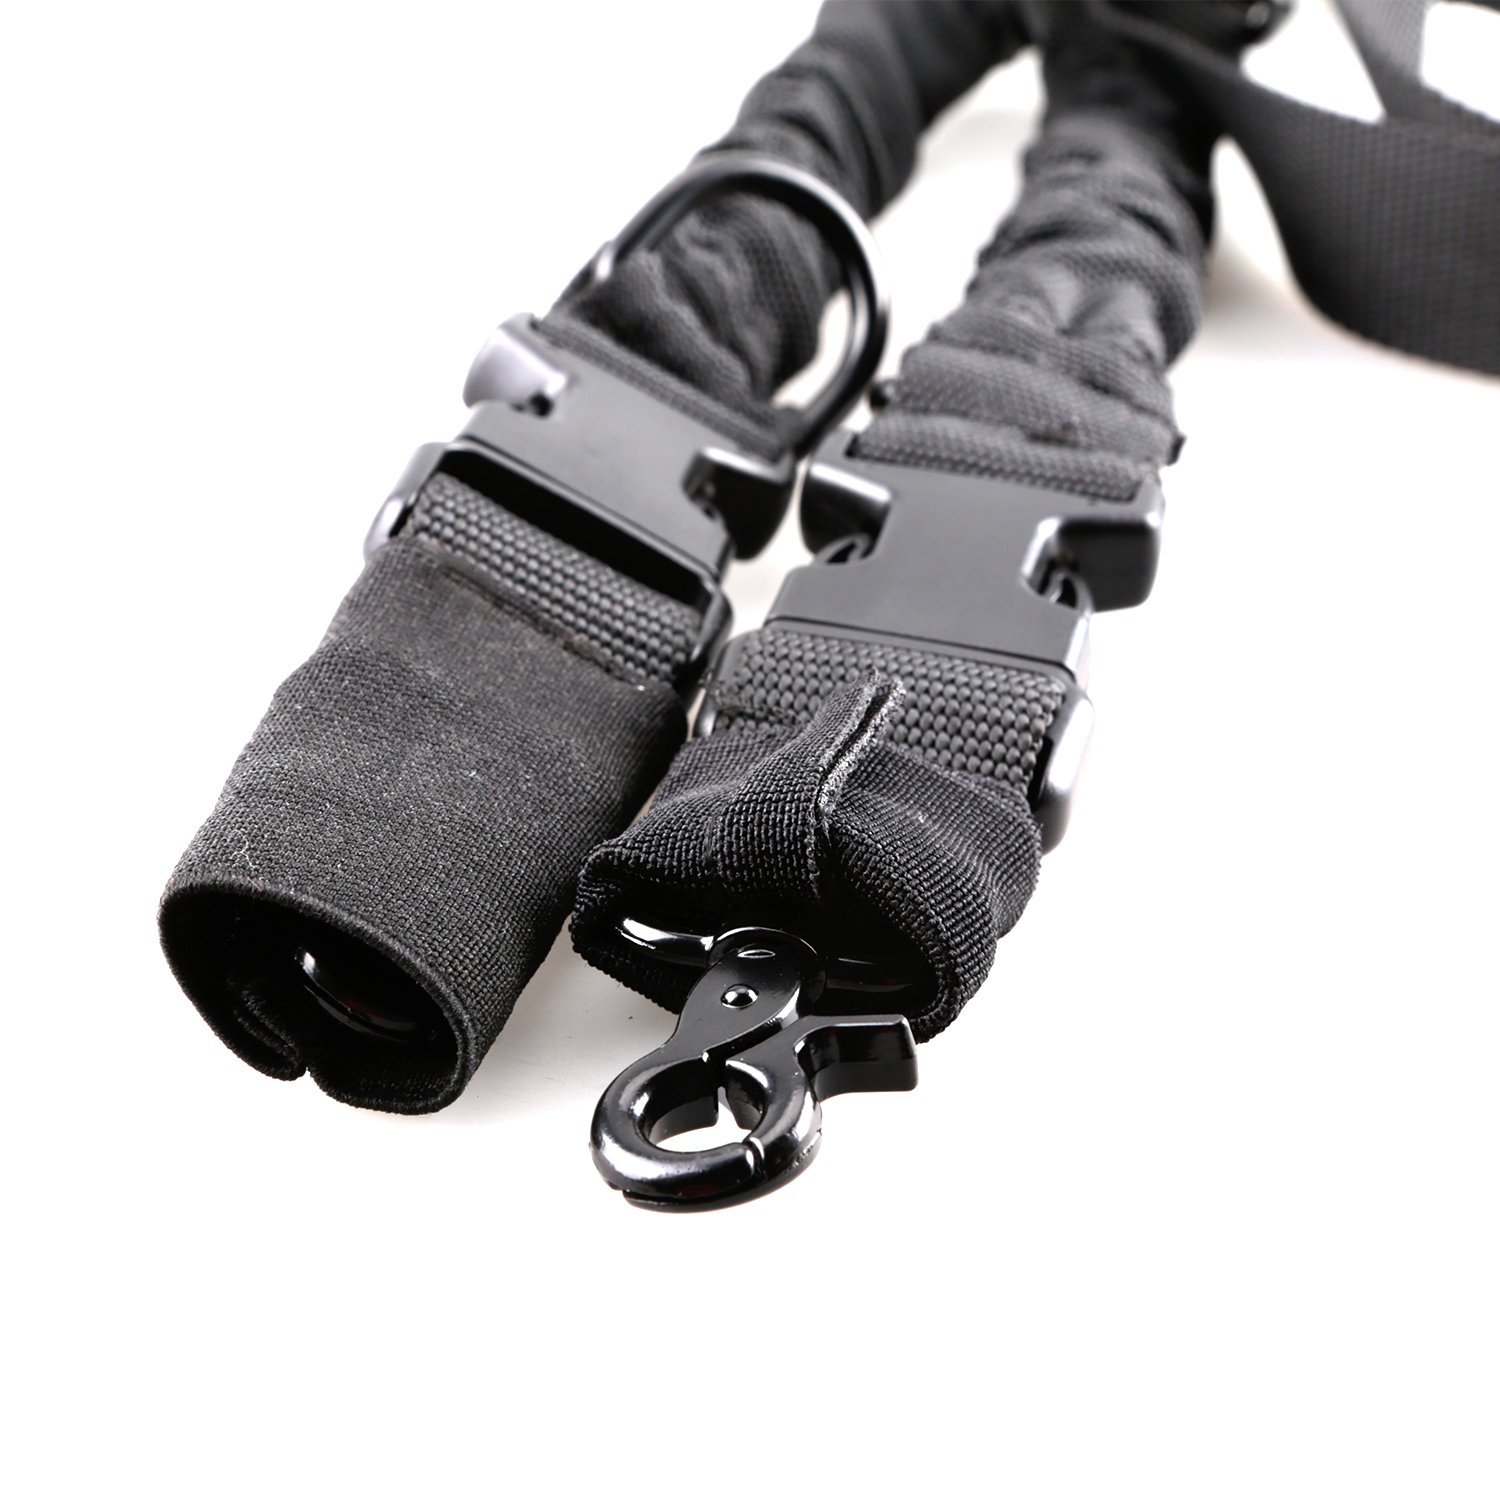 Tough Tactical Tools Keymod Sling Attachment Adapter with 2 Point Gun Sling for Hunting Shooting or other Outdoor Sports by Tough Tactical Tools (Image #5)